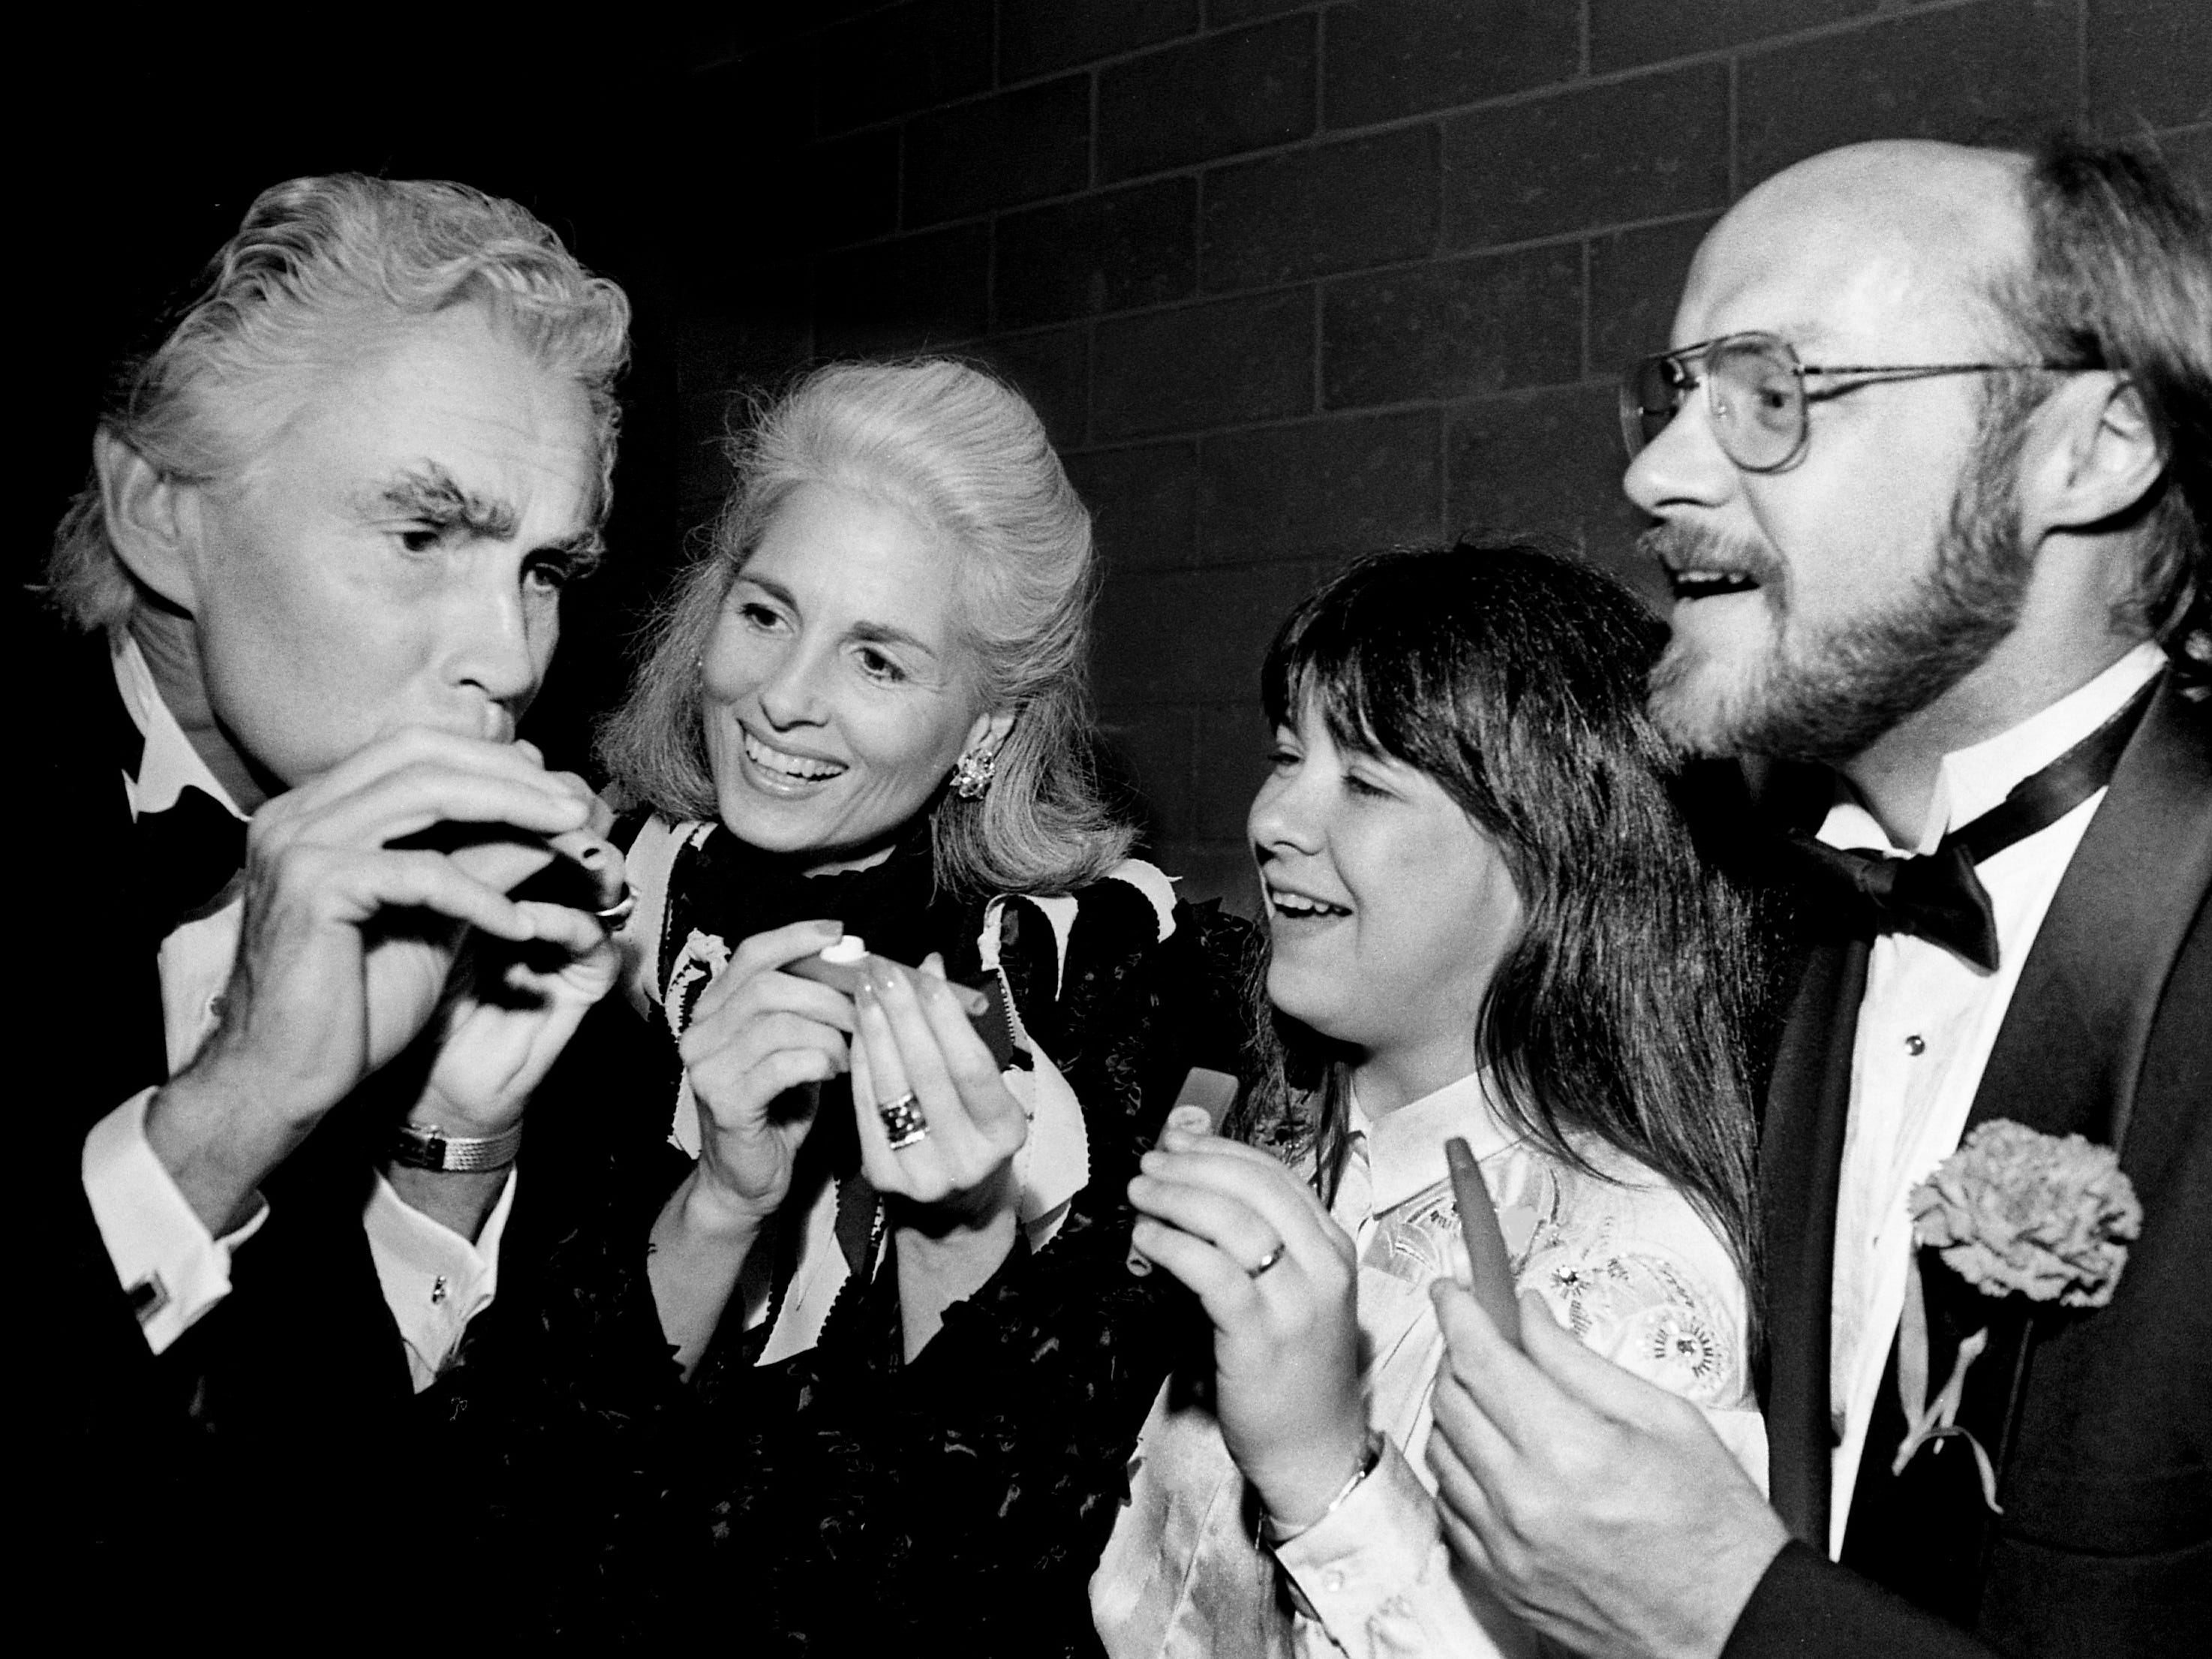 """Audience members at the first performance of the Nashville Symphony's new season Nov. 4, 1988, got a chance to make music of their own with kazoos during the high-spirited finale, """"Stars and Stripes Forever."""" Symphony conductor Kenneth Schermerhorn, left, gives a demonstration to his wife, Tish, concert mistress Teresa Fream and assistant conductor Brian Groner."""